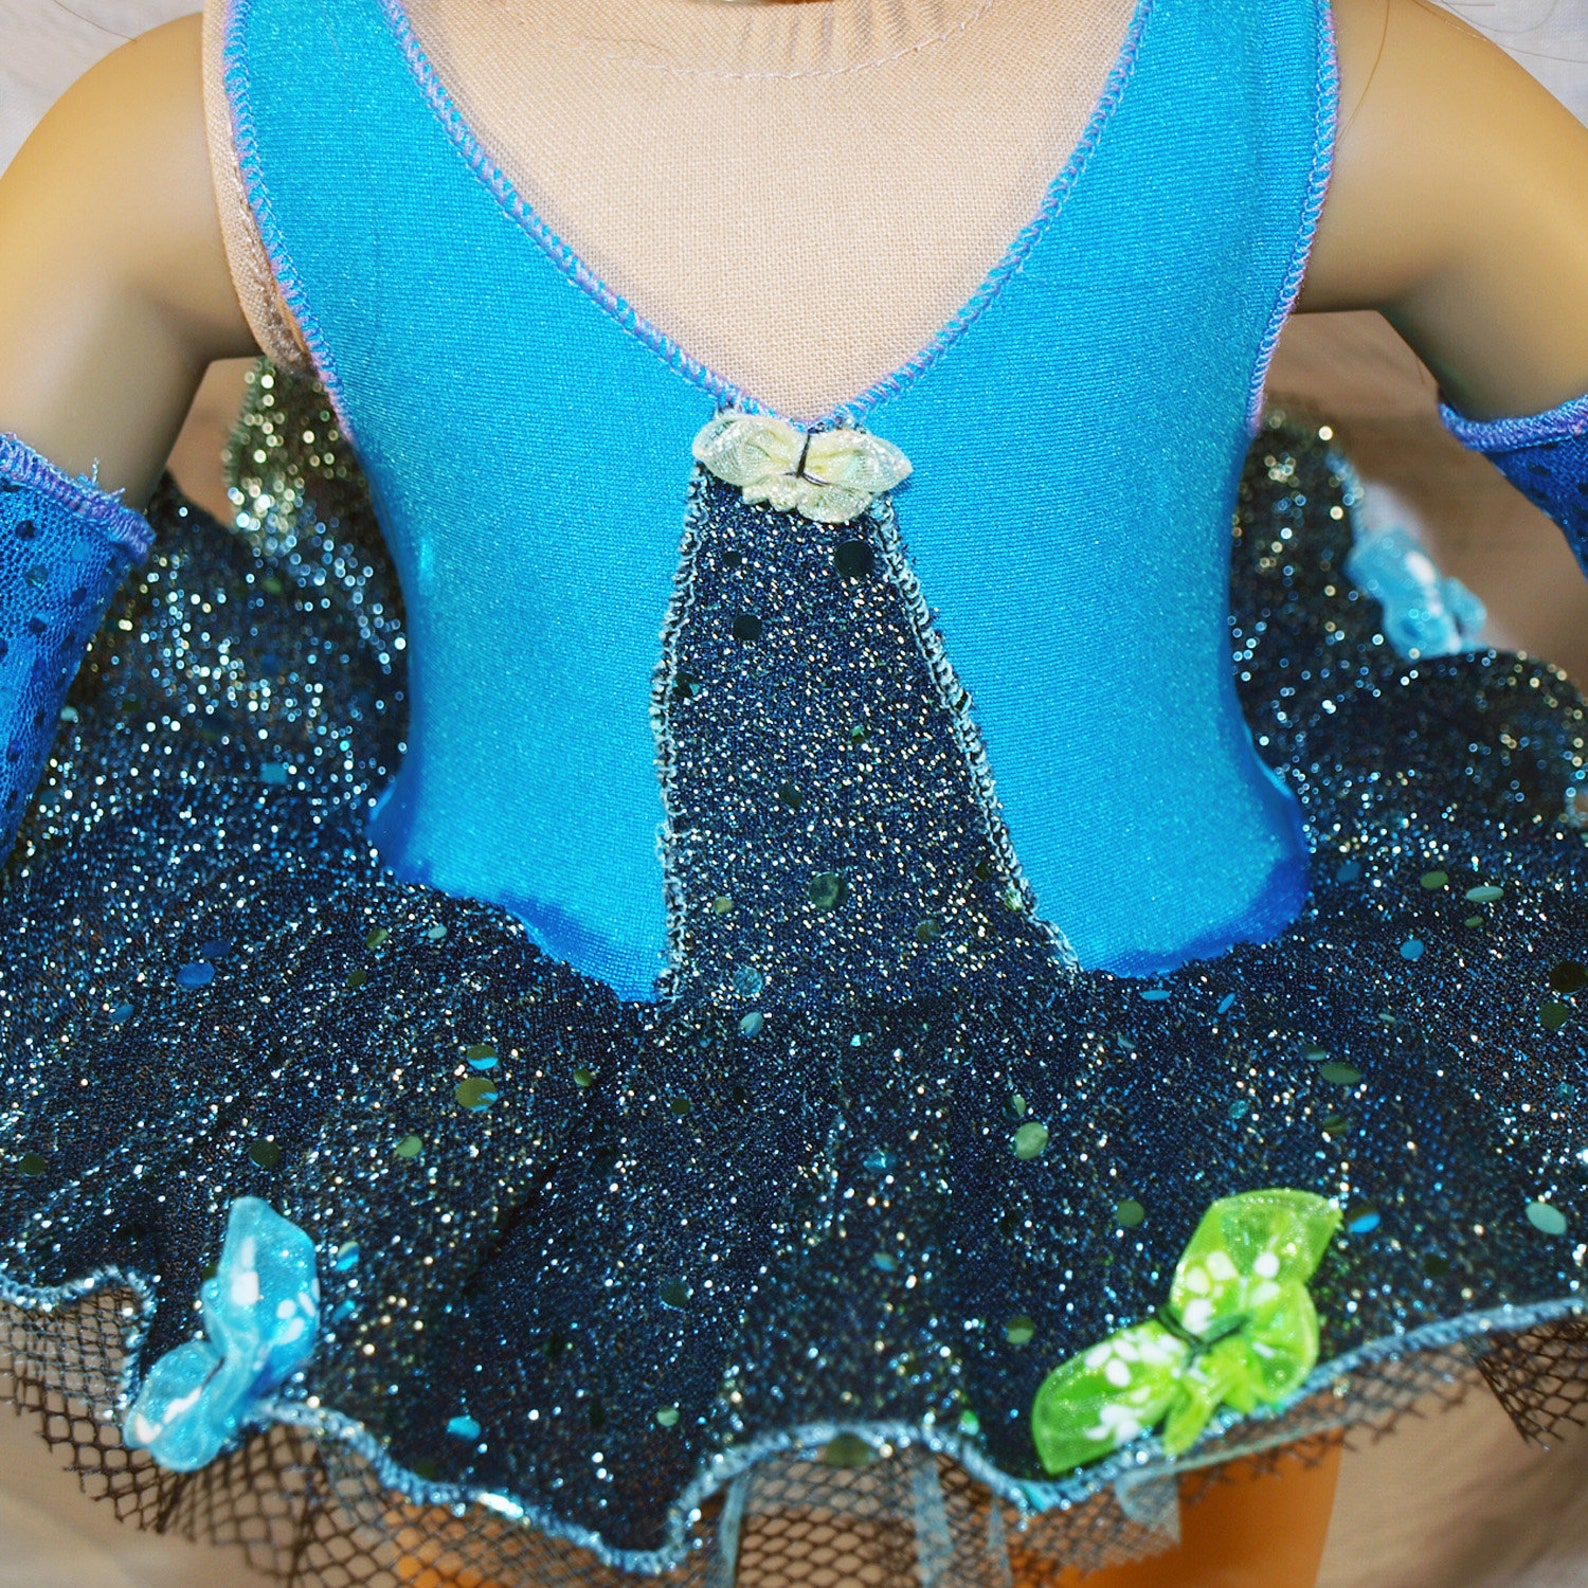 dance costume for ballet in blue and black sparkle full tutu with armbands and shoes, modeled on american girl doll